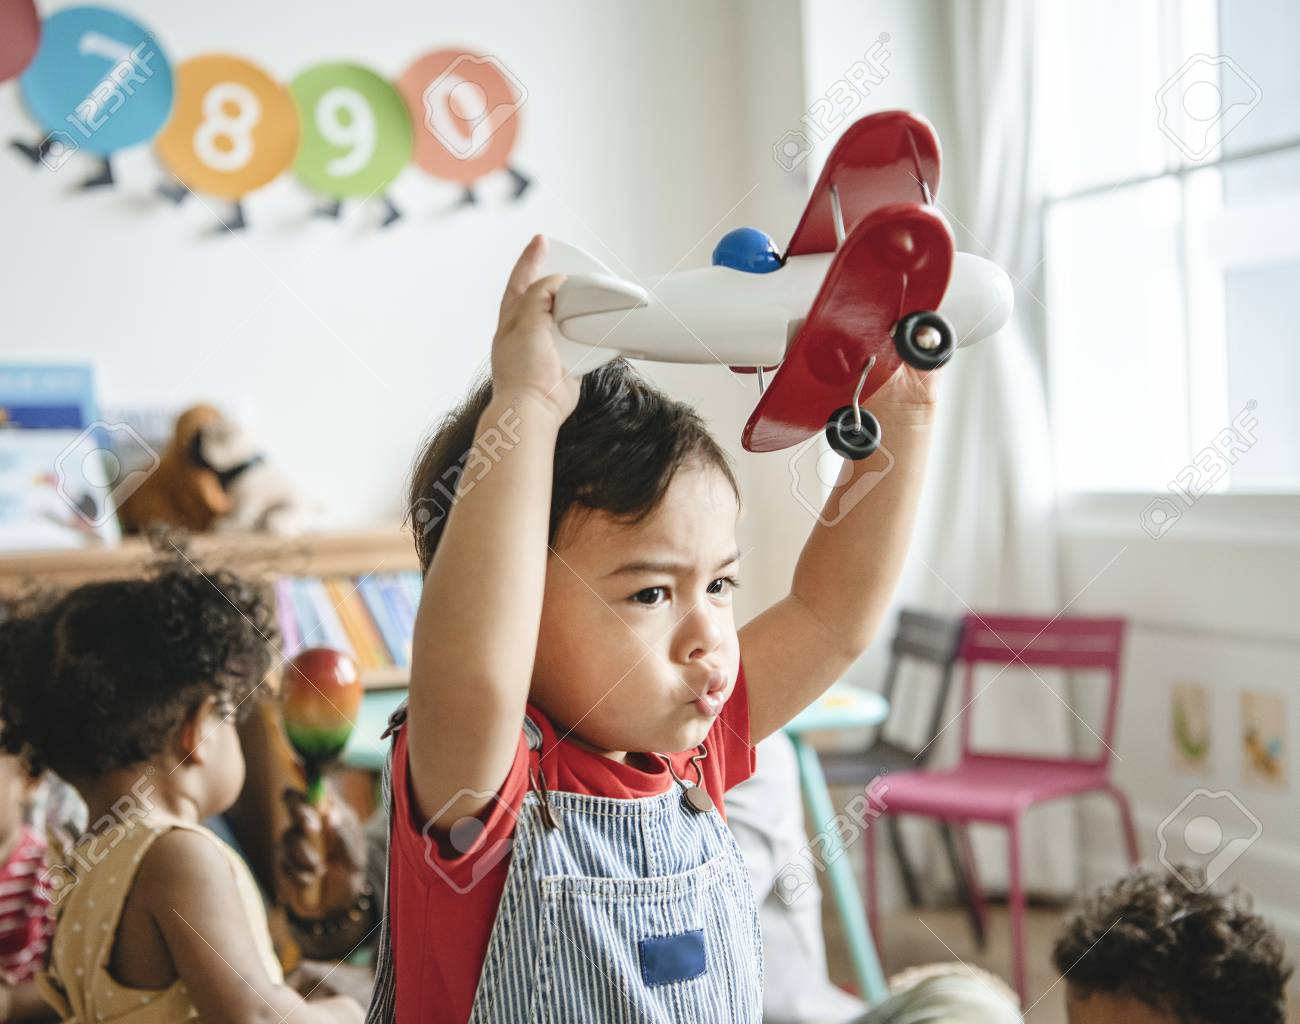 Preschooler enjoying playing with his airplane toy - 116689690